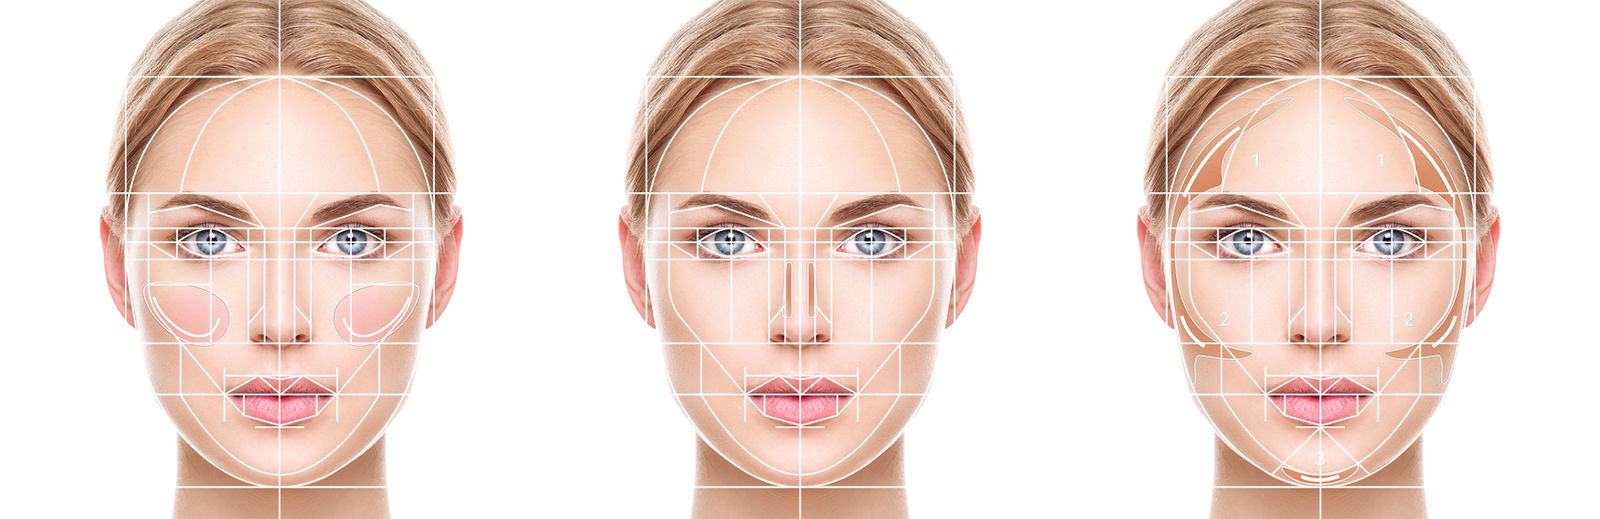 burberry face scan 2